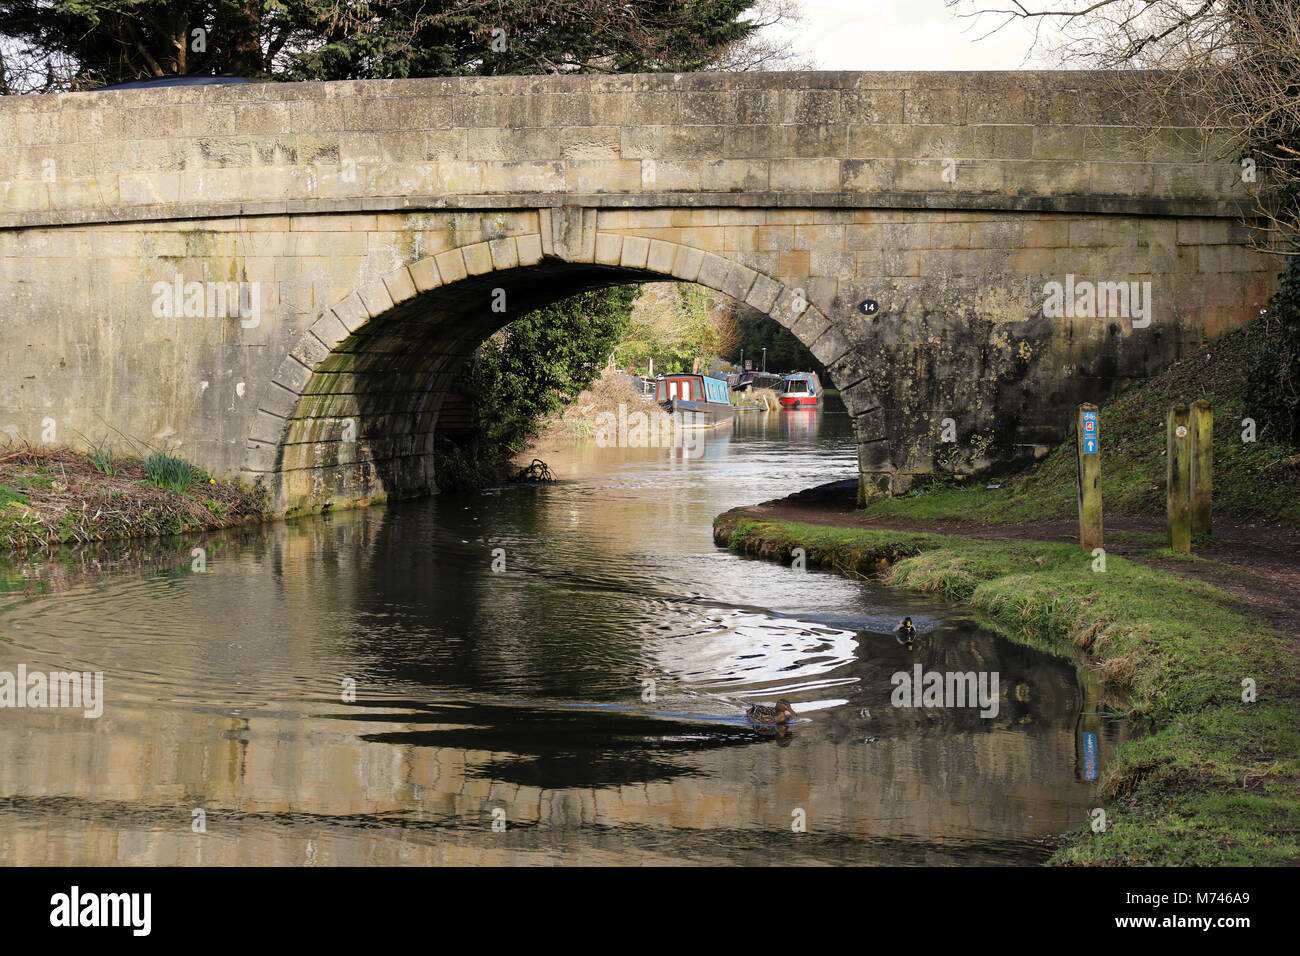 Kennet & Avon Canal in west Berkshire with quaint stone road bridge crossing the canal - Stock Image